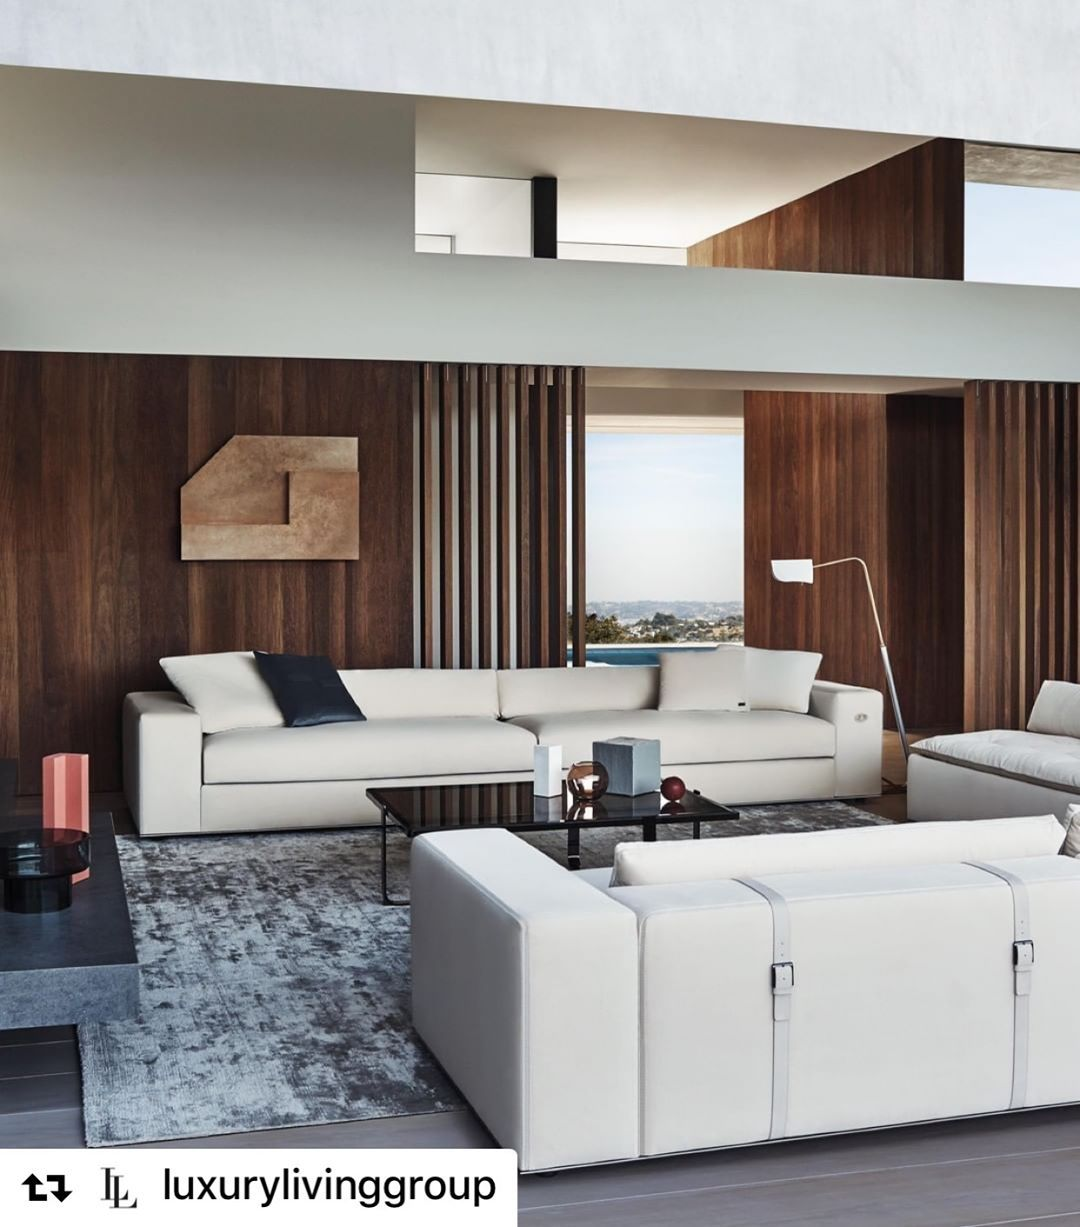 Fendi Casa Saudi Arabia On Instagram The Fendi Casa Style Is Expressed In Each Element Of The Belt Sofa The Leather St Fendi Casa Sofa Colors Sofa Furniture